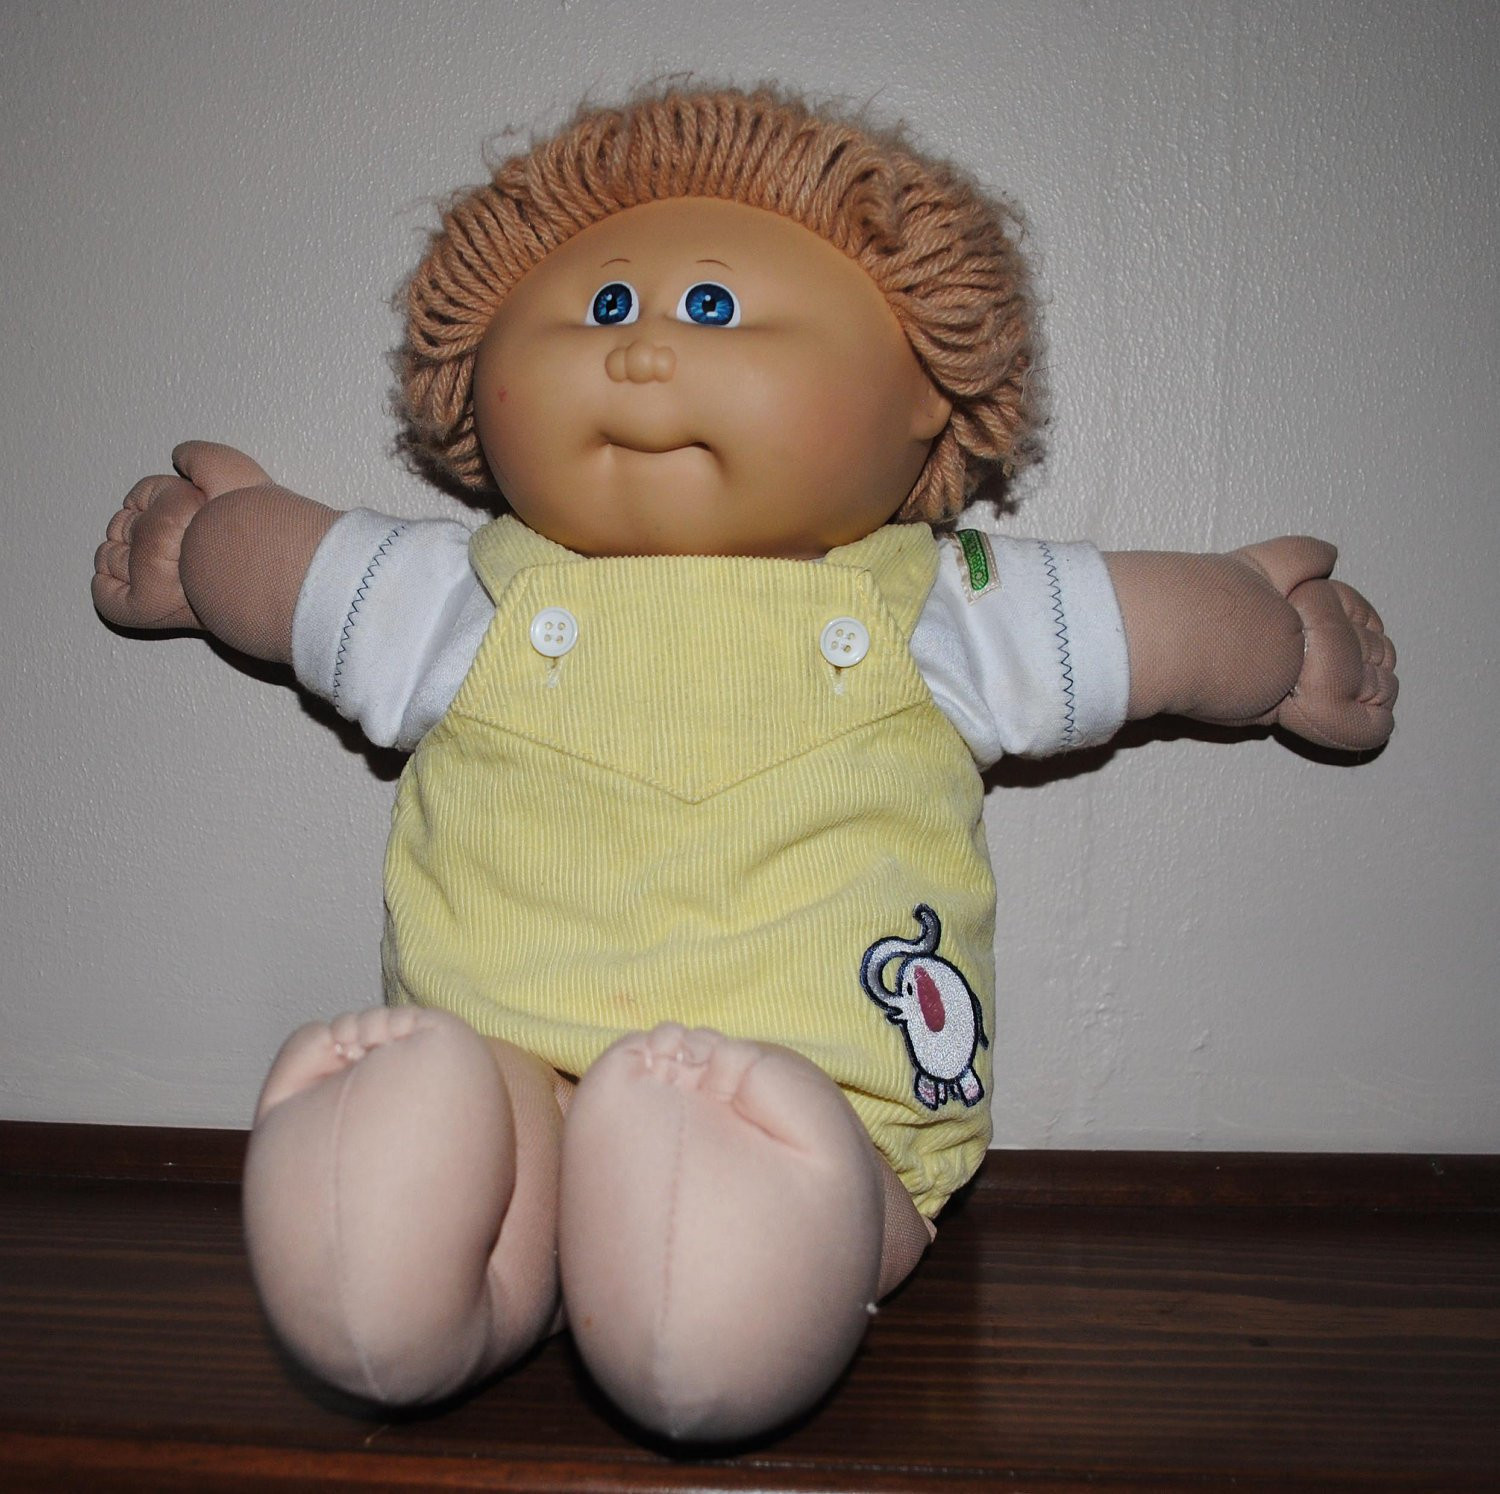 Cabbage Patch Doll Value New original Cabbage Patch Kid Doll 1982 Of Contemporary 40 Pictures Cabbage Patch Doll Value